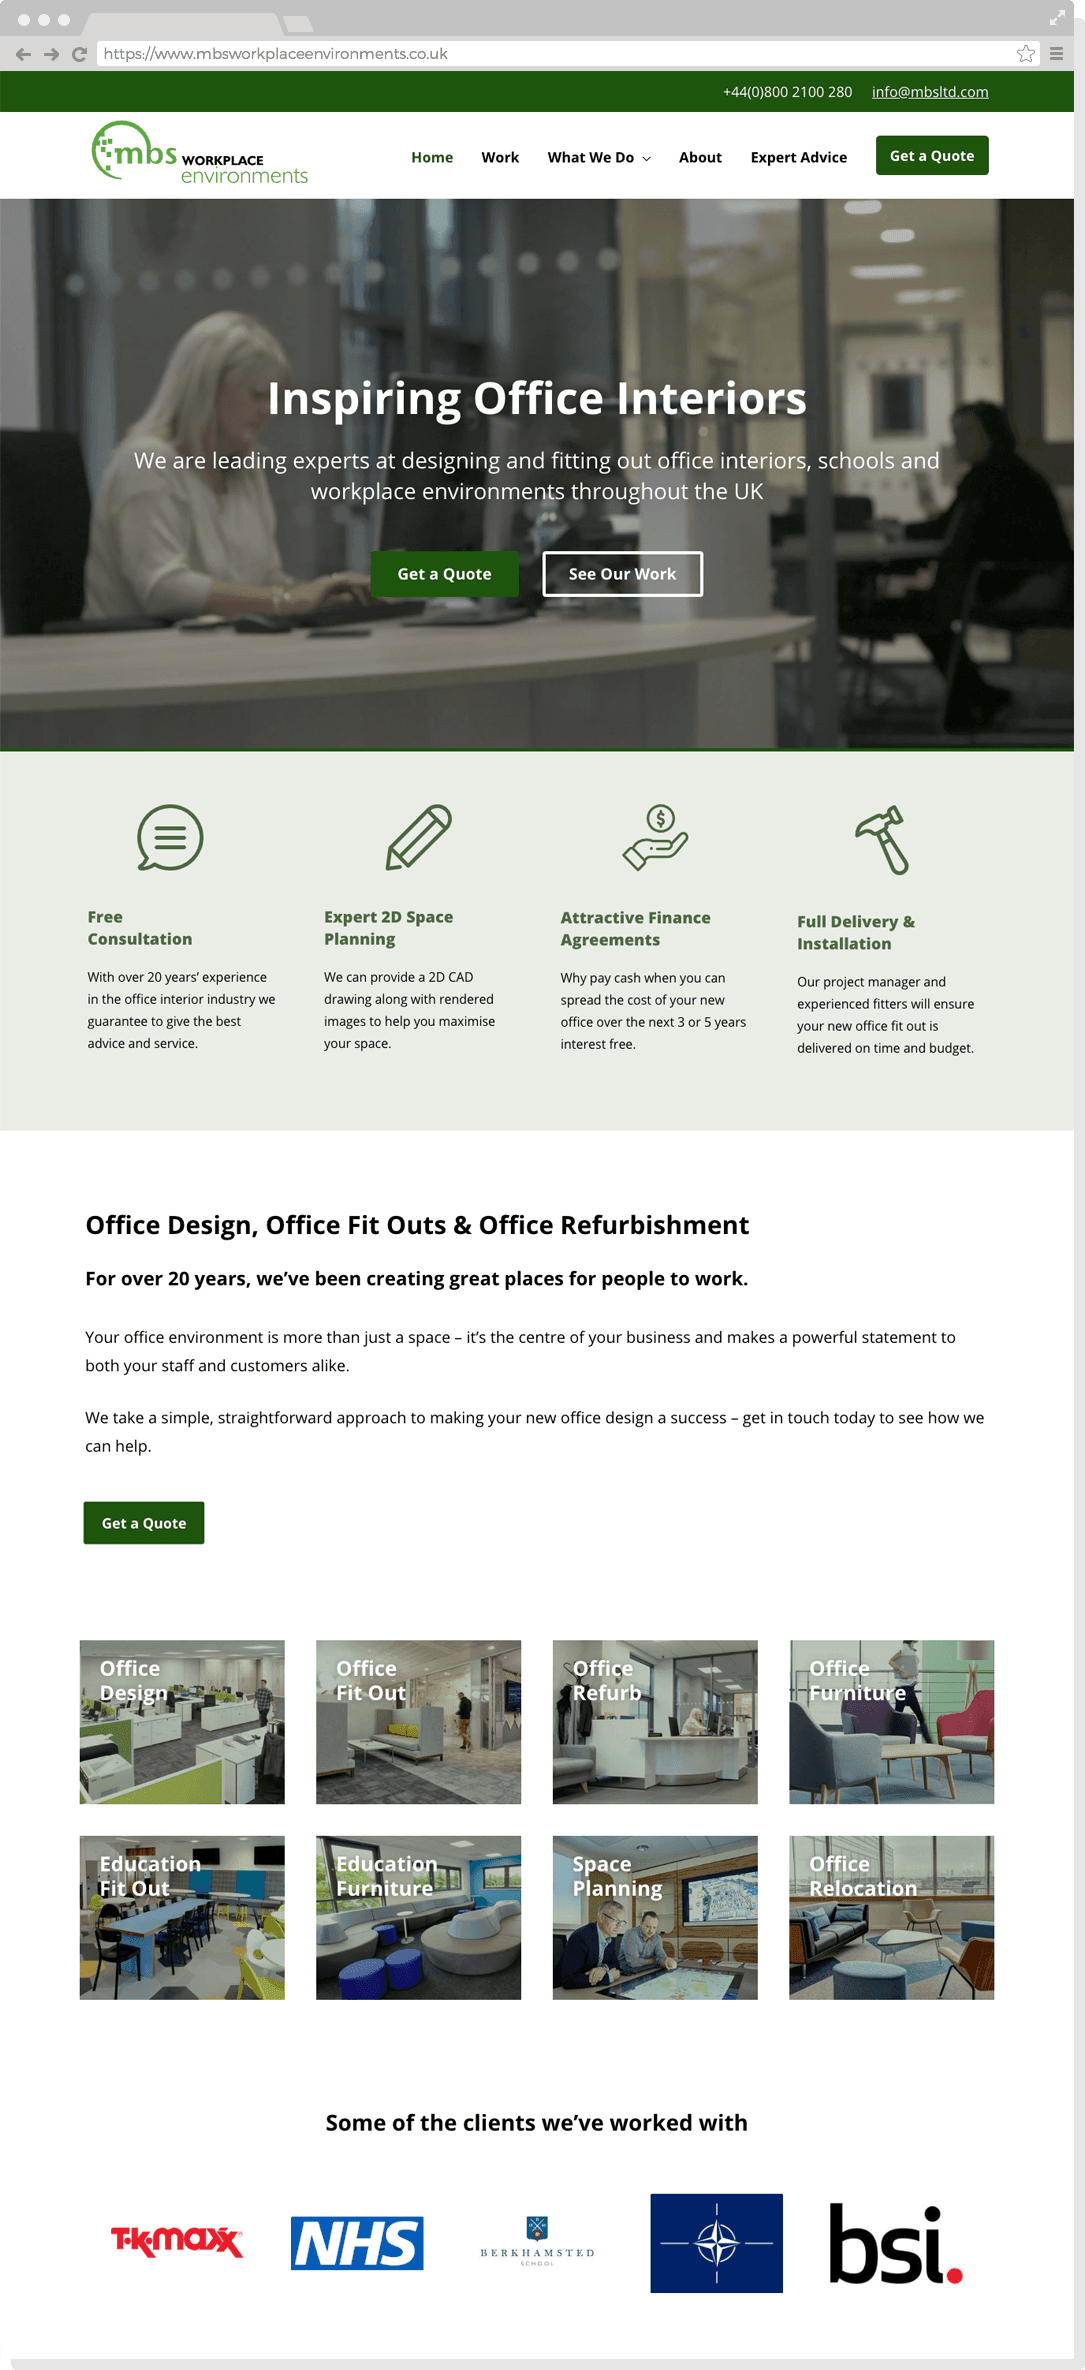 Home page of the MBS Workplace Environments website